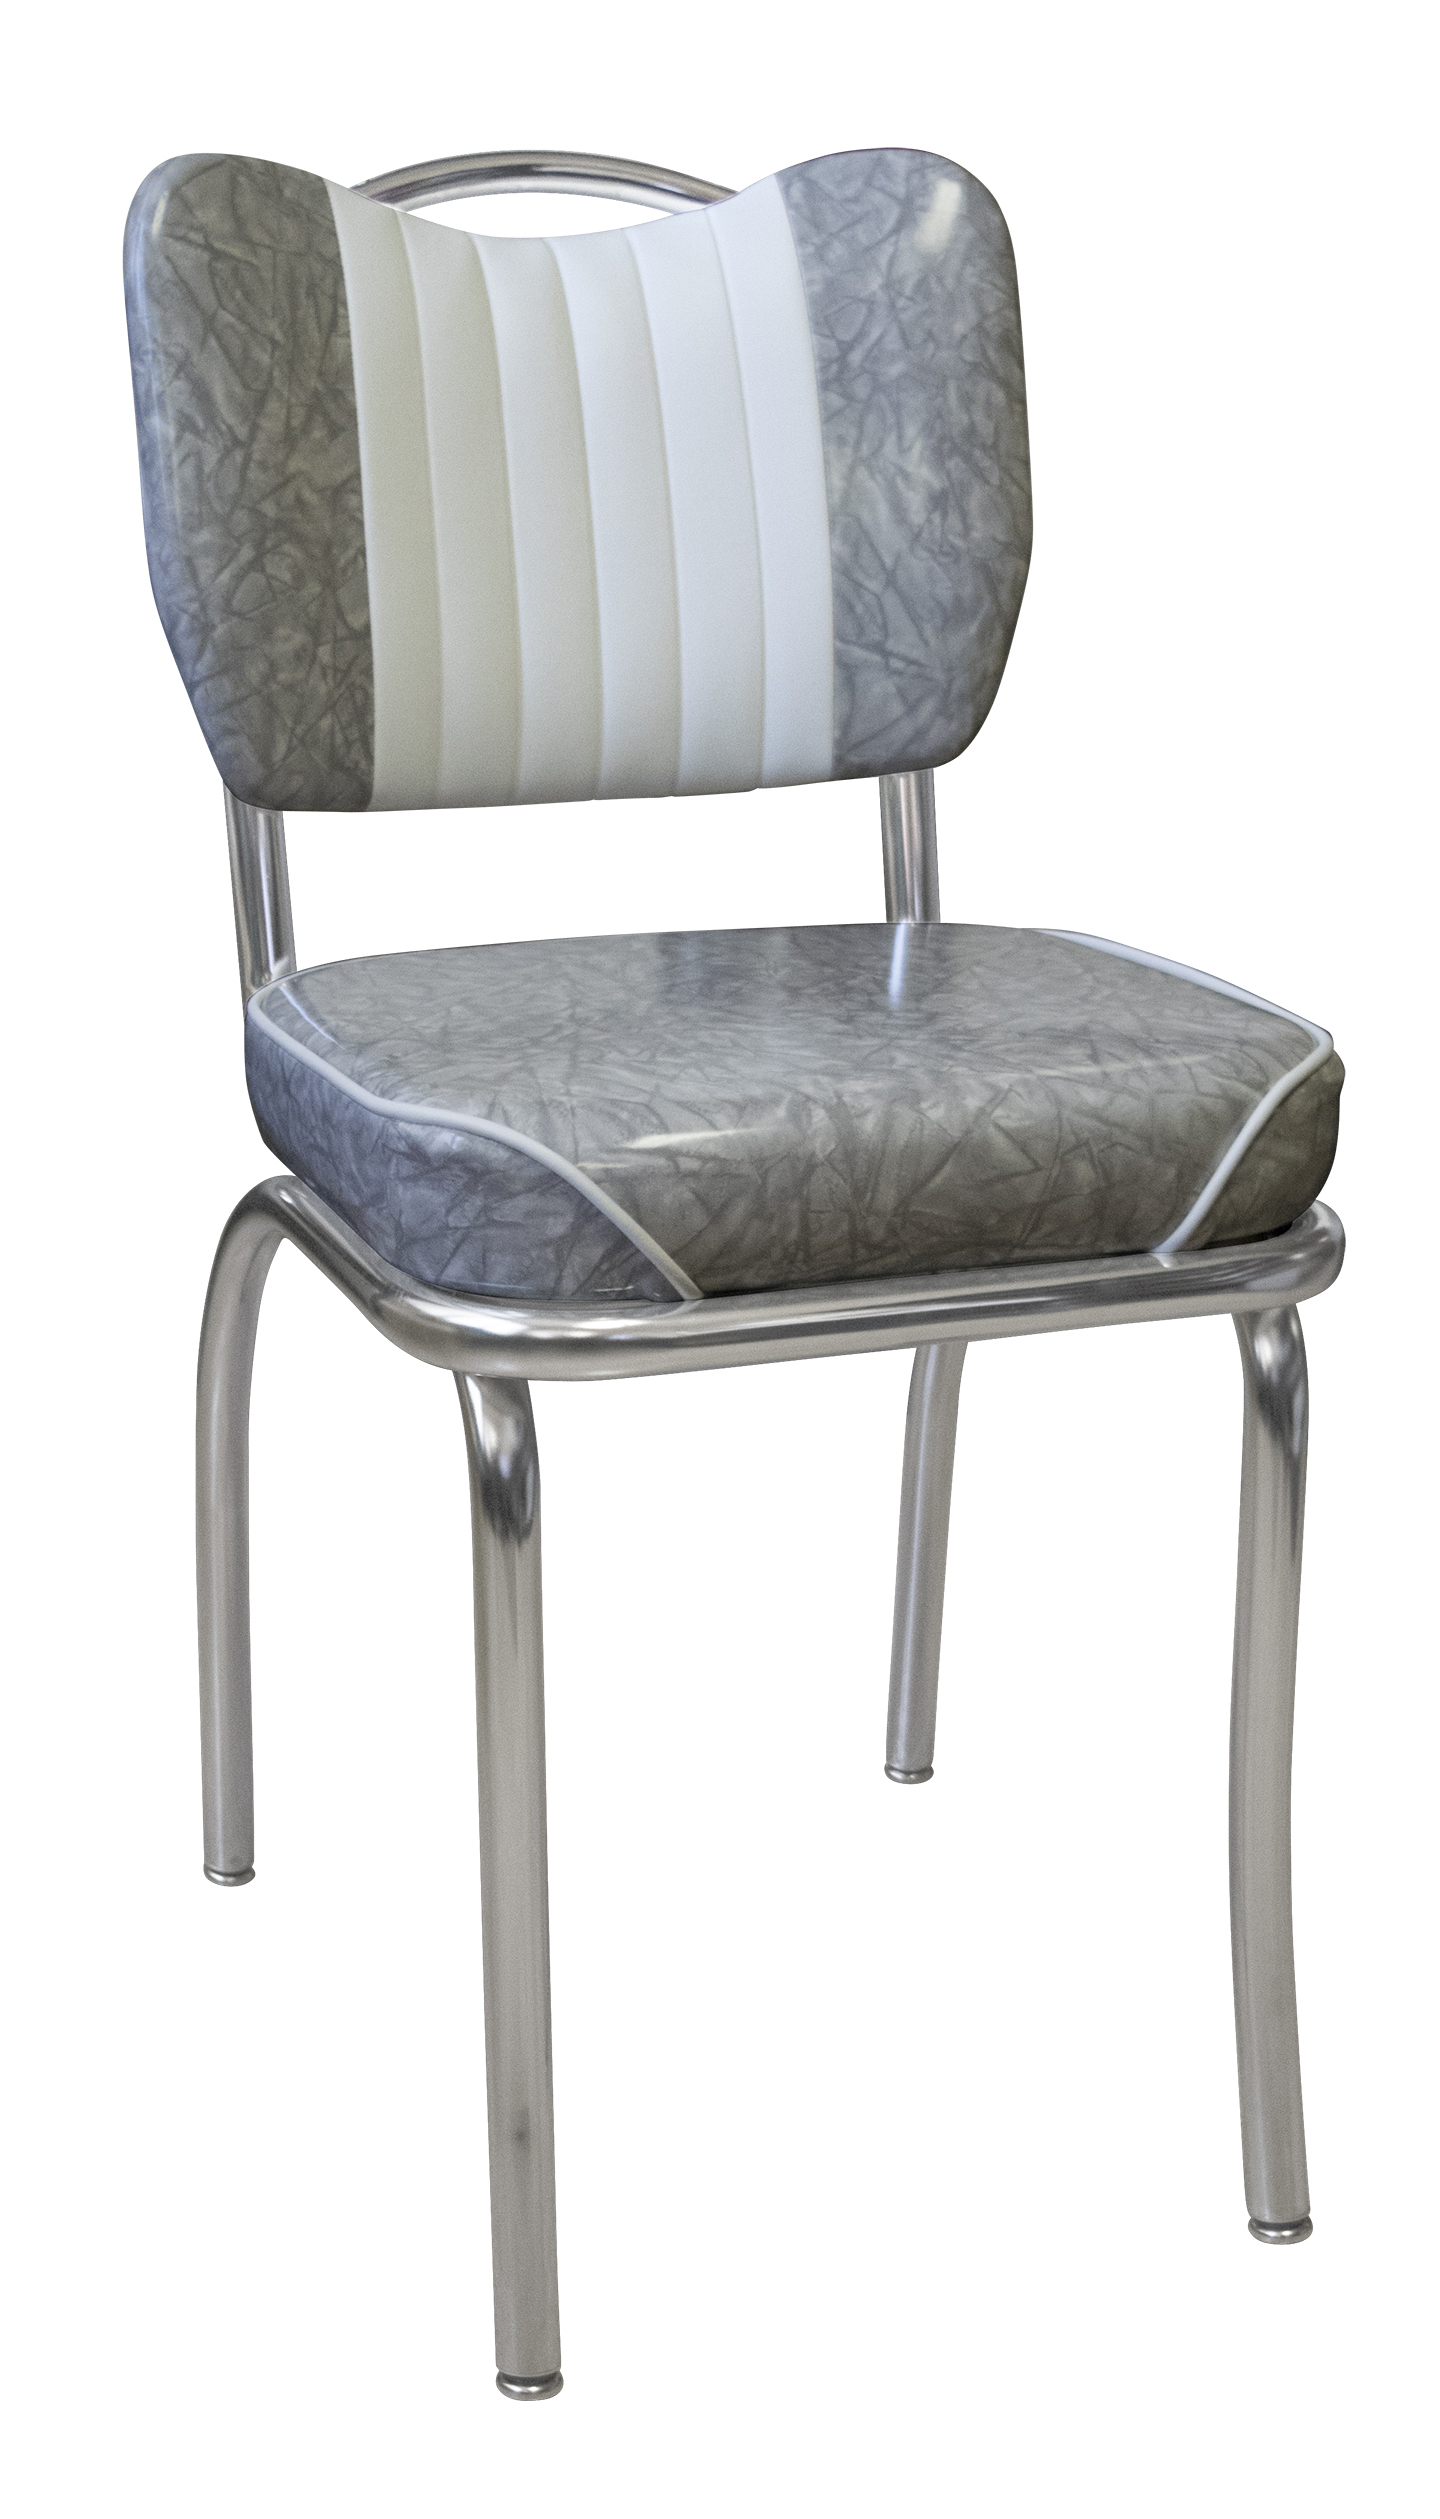 Dining Chairs With Handles On Back 921hbshmb New Retro Dining Classic Handle Back Malibu